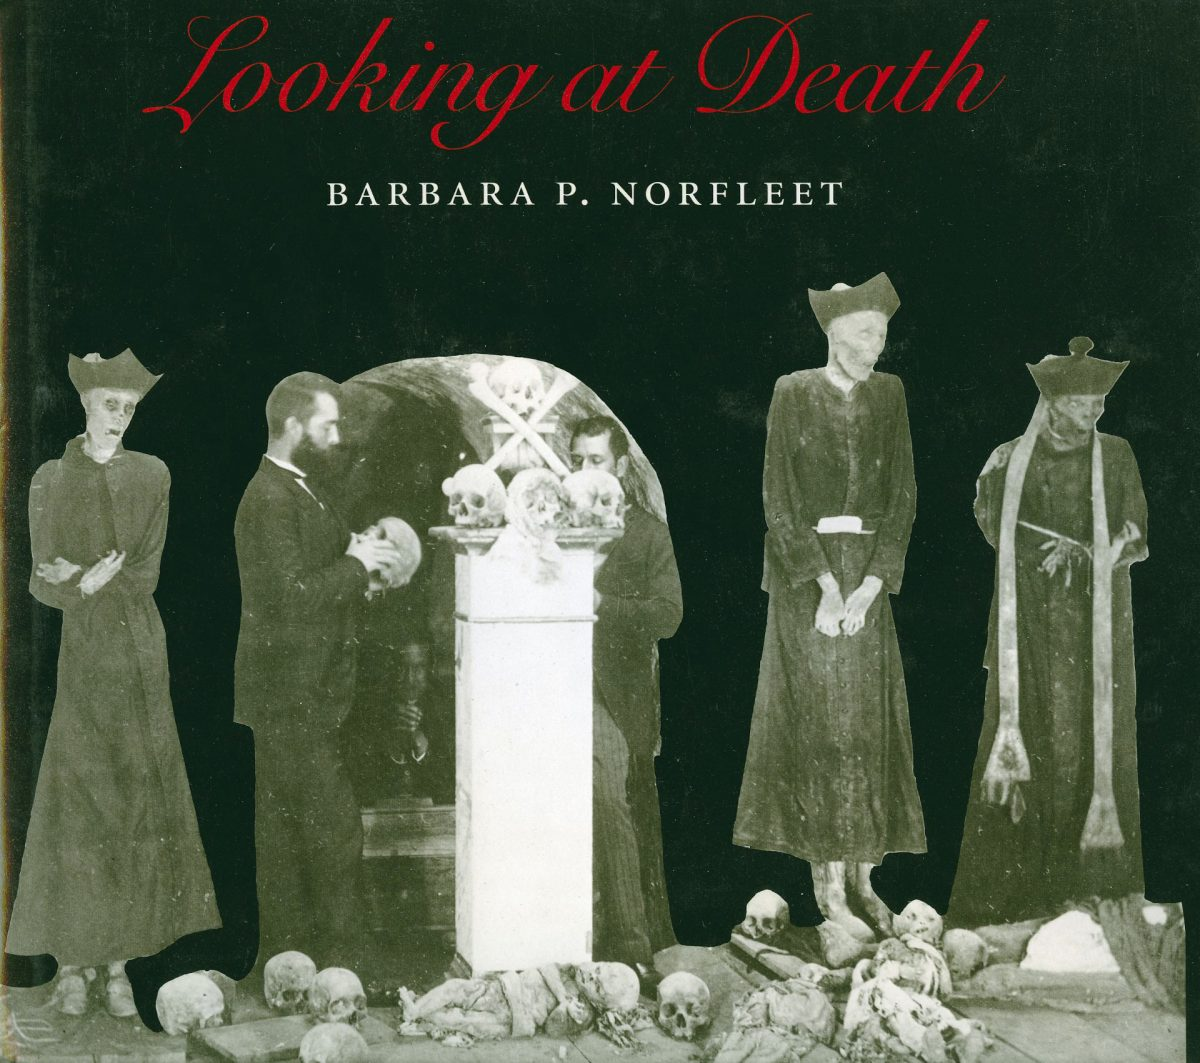 Looking at Death